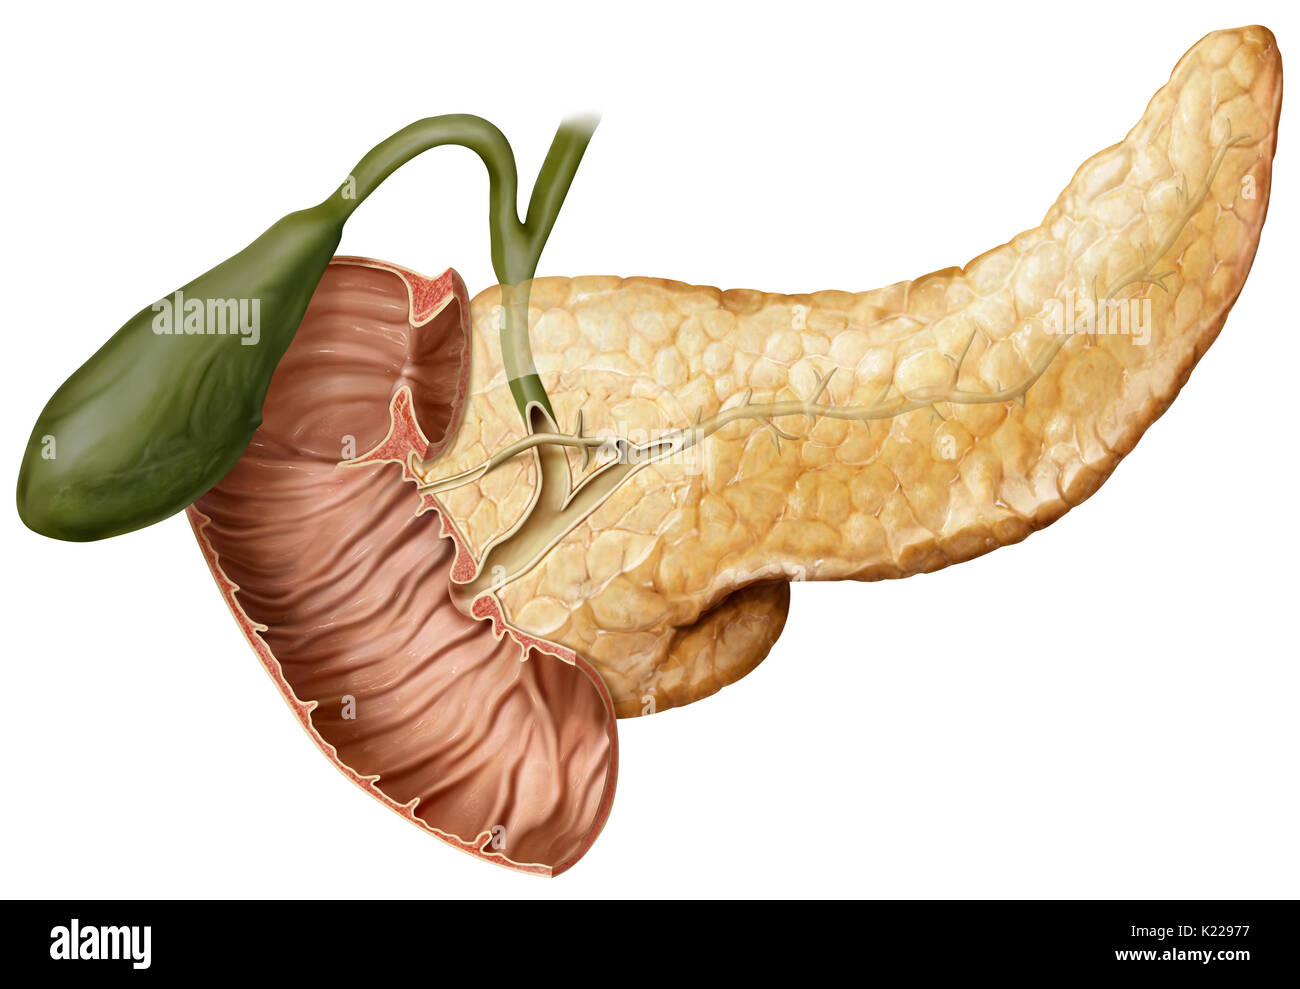 Obstruction of the pancreatic duct prevents the ejection of pancreatic juices into the duodenum. - Stock Image